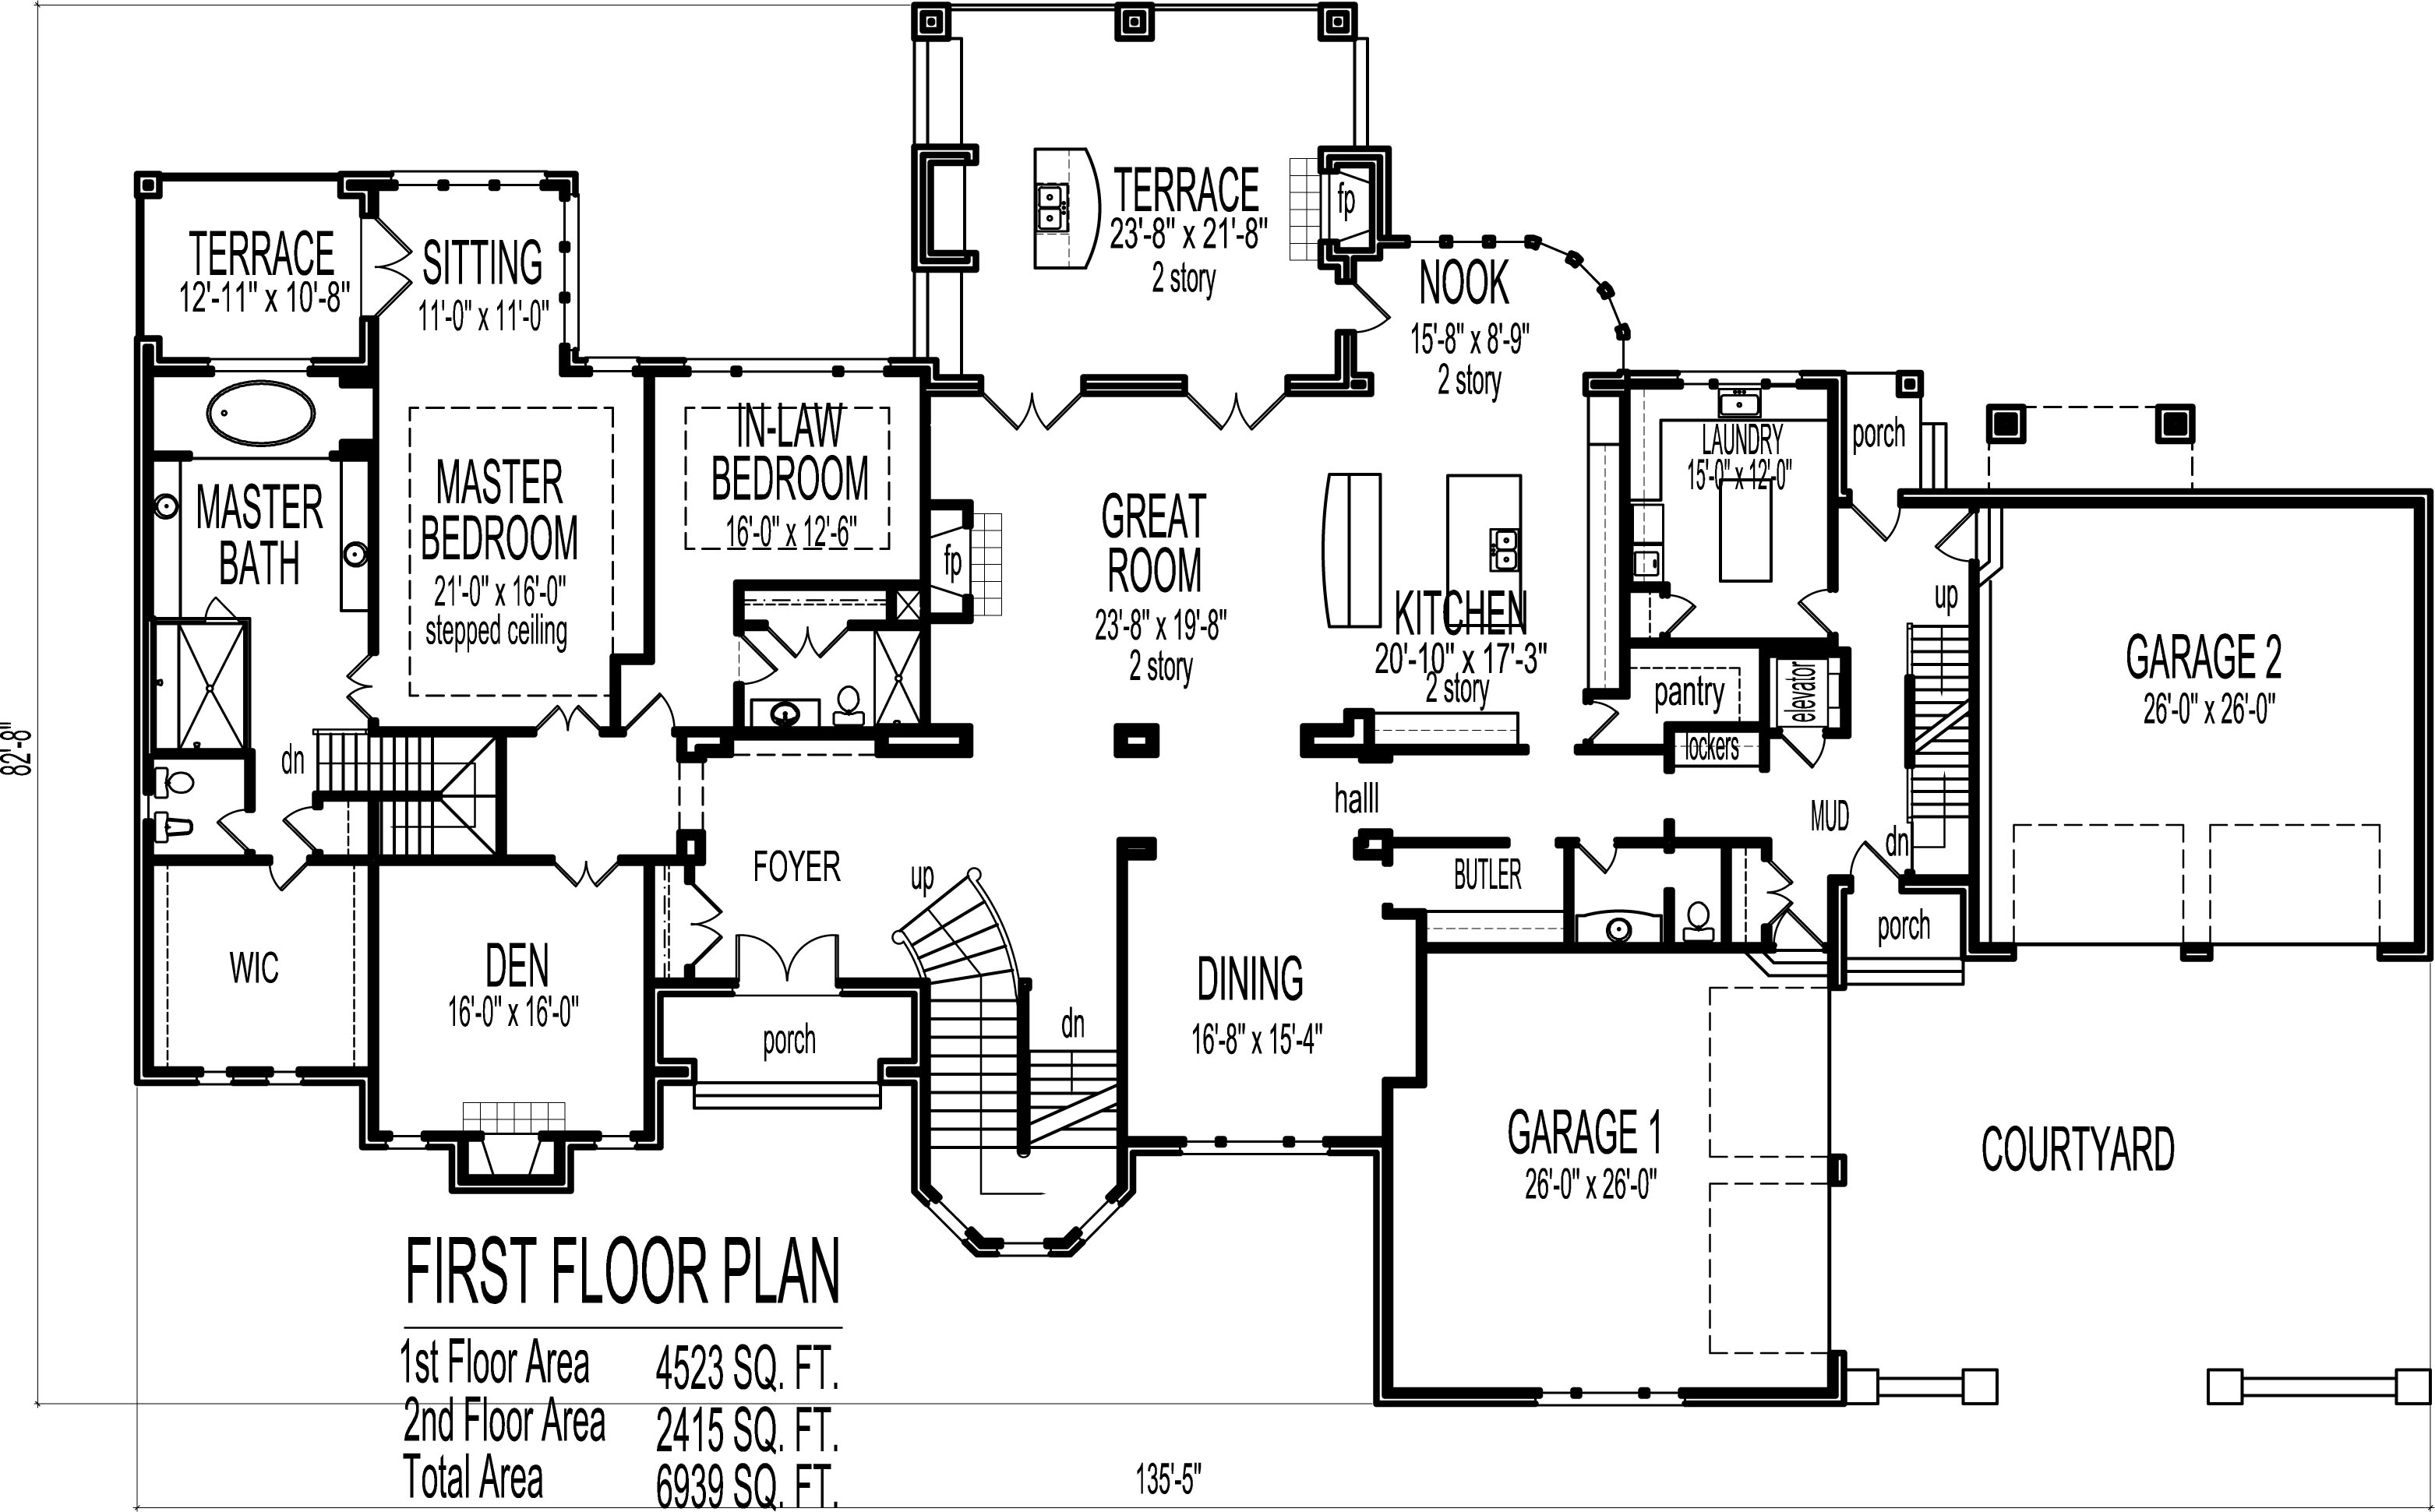 Dream house floor plans blueprints 2 story 5 bedroom large for 5 bedroom 5 bathroom house plans